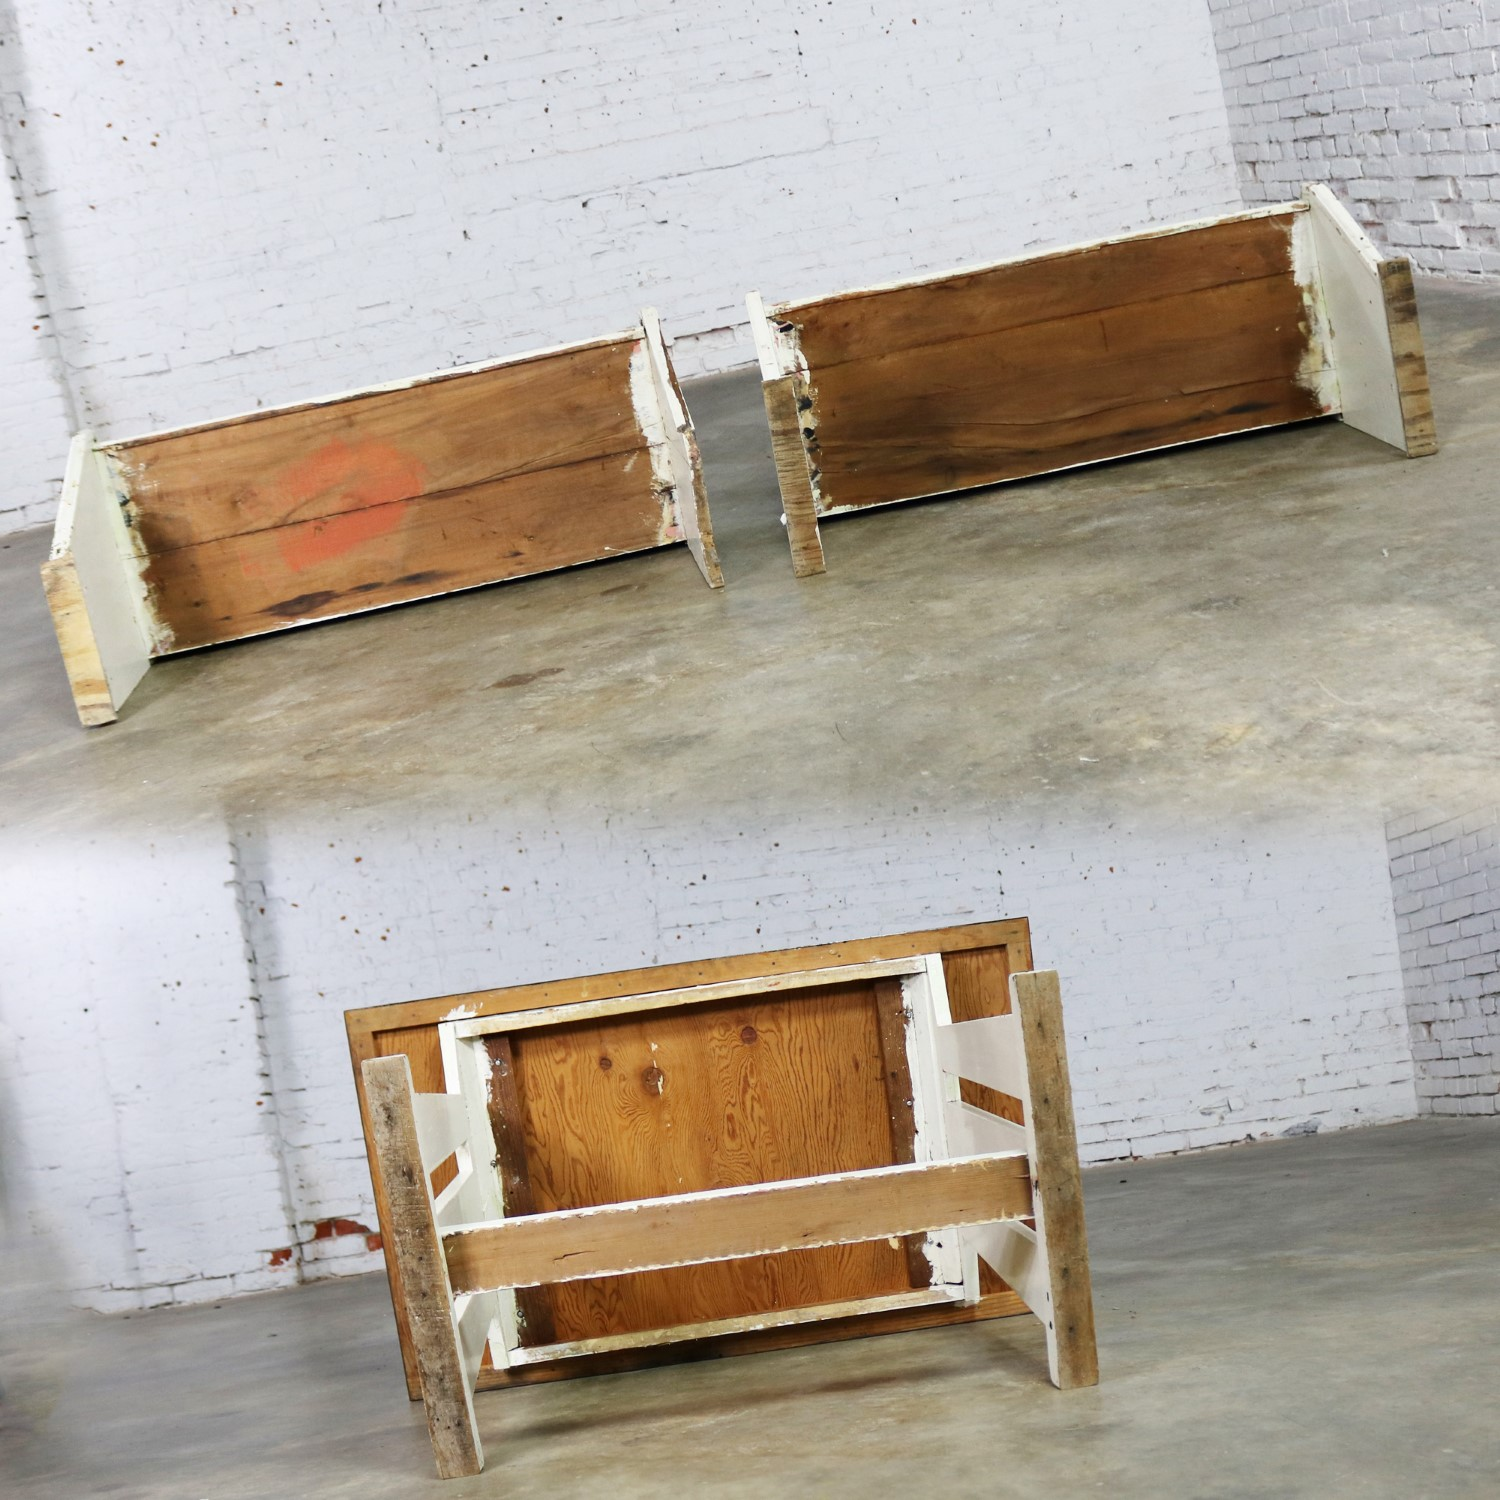 Brilliant Rustic Arts And Crafts Black And White Diner Booth Banquette Machost Co Dining Chair Design Ideas Machostcouk